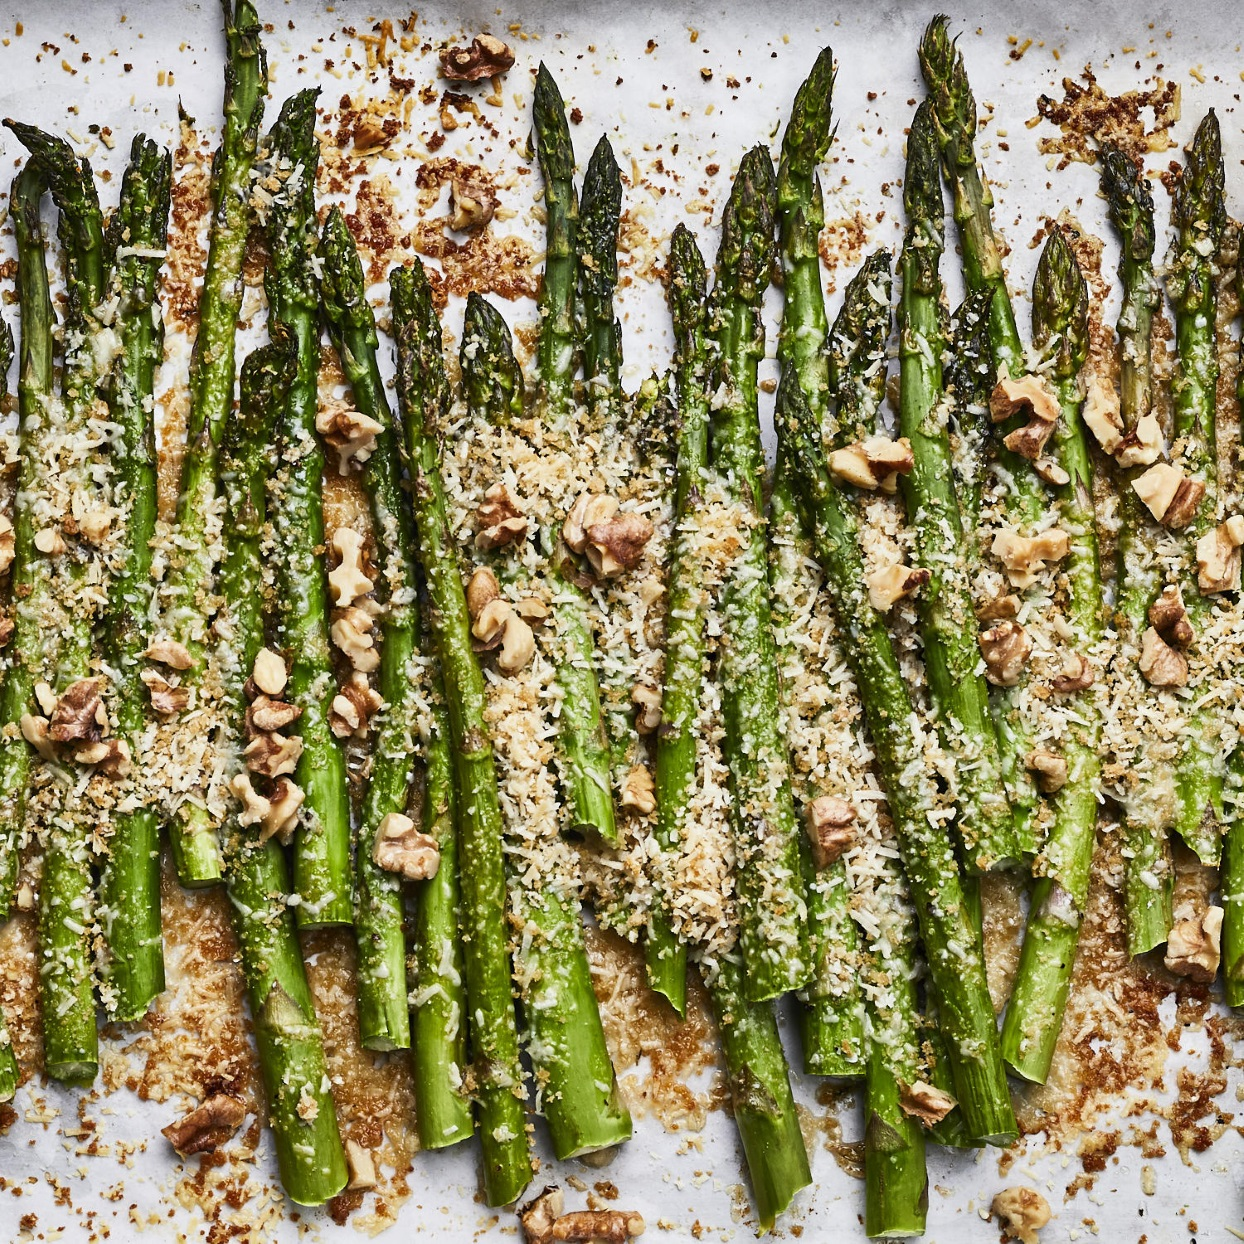 In this garlic-Parmesan-crusted asparagus recipe, we combine Parmesan cheese, whole-wheat panko breadcrumbs and walnuts for a crispy topping that's baked over asparagus. Roasting the asparagus spears in a hot oven keeps them tender-crisp in this quick side dish! Source: EatingWell.com, January 2020